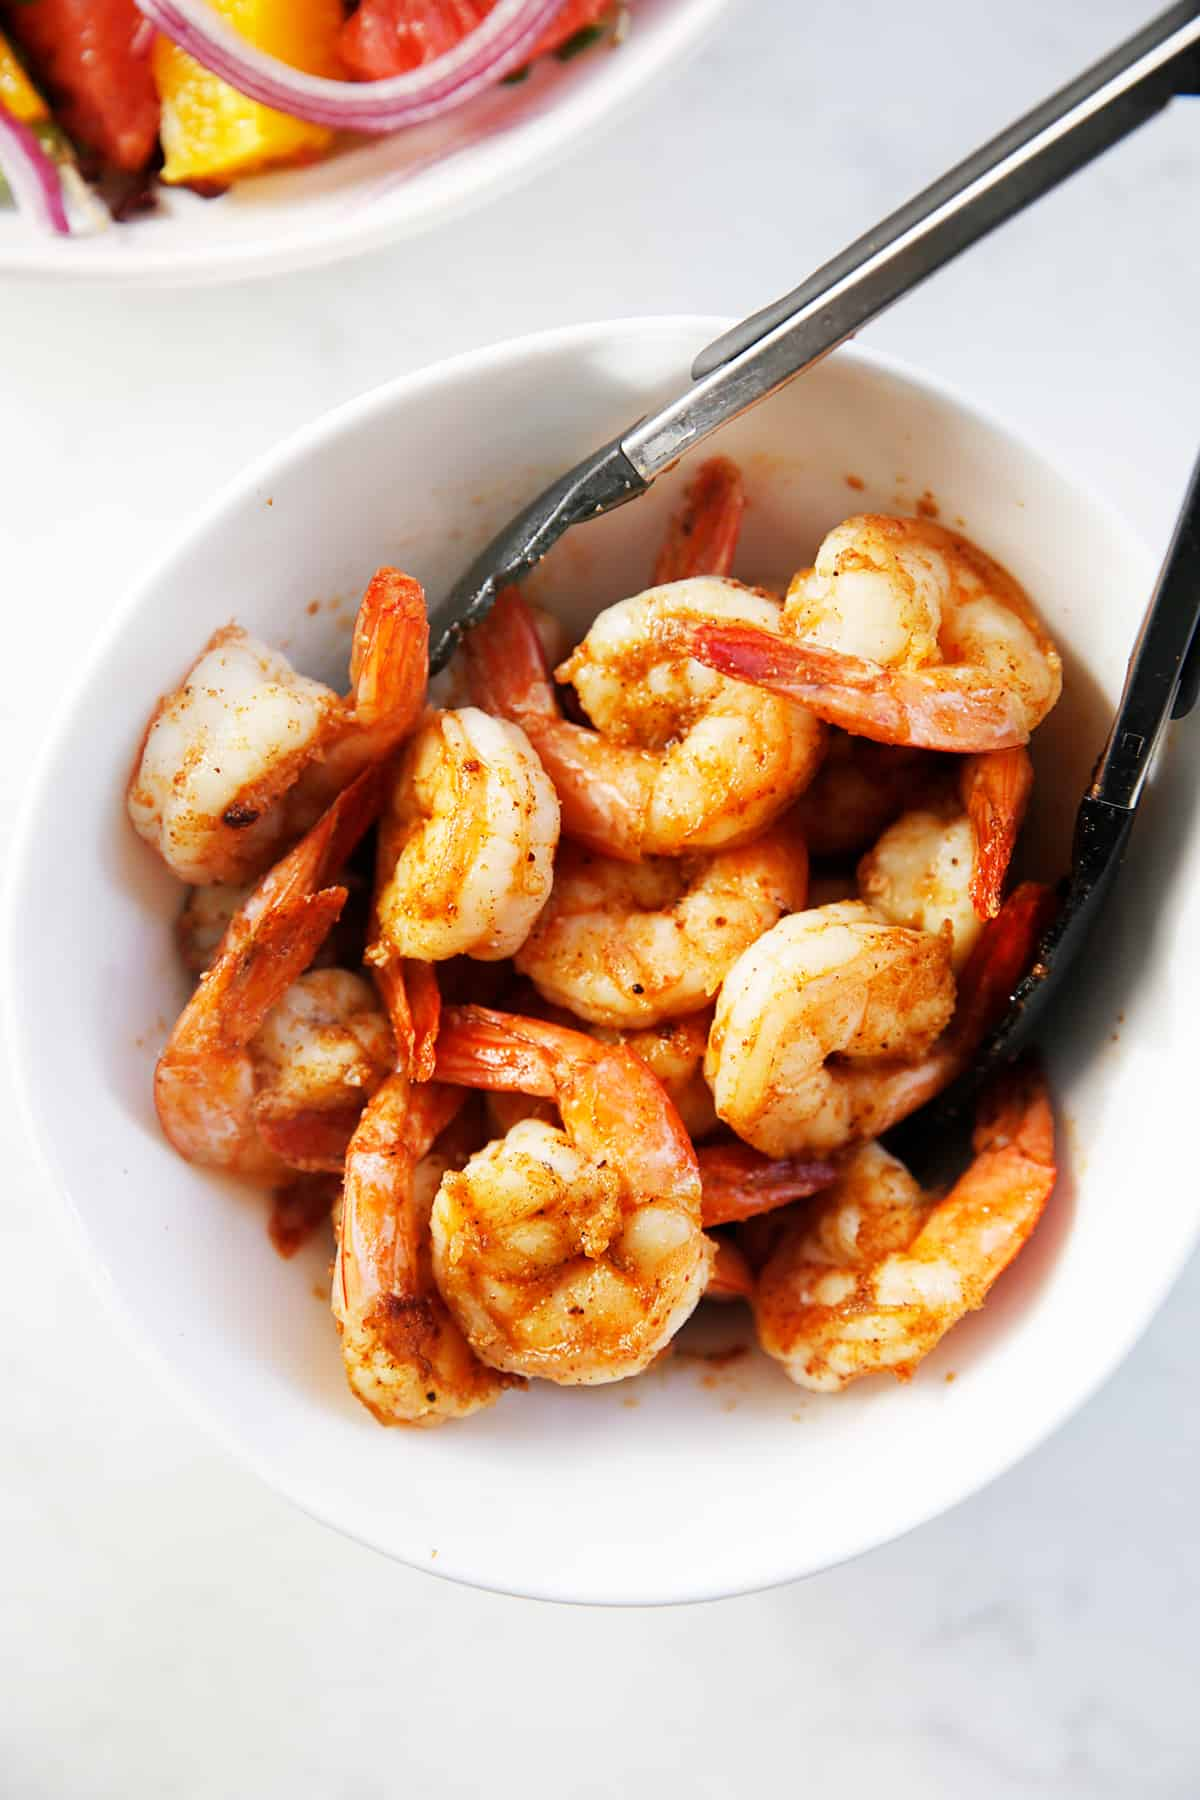 Cooked spicy shrimp for the salad in a bowl.